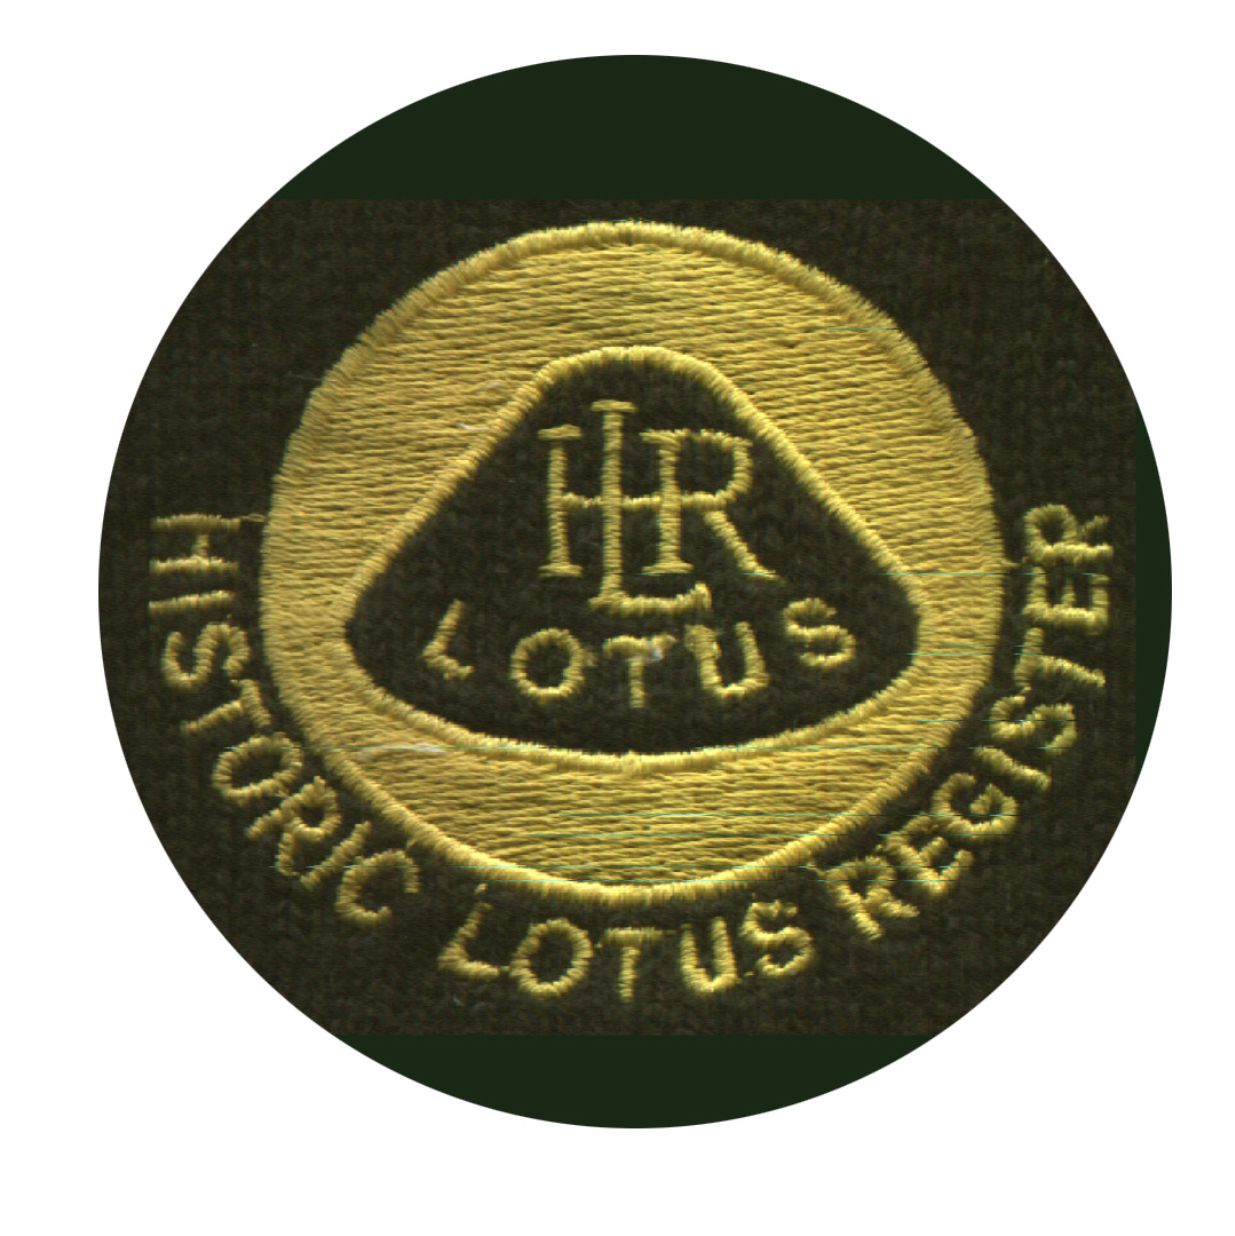 Embroidered cloth badges